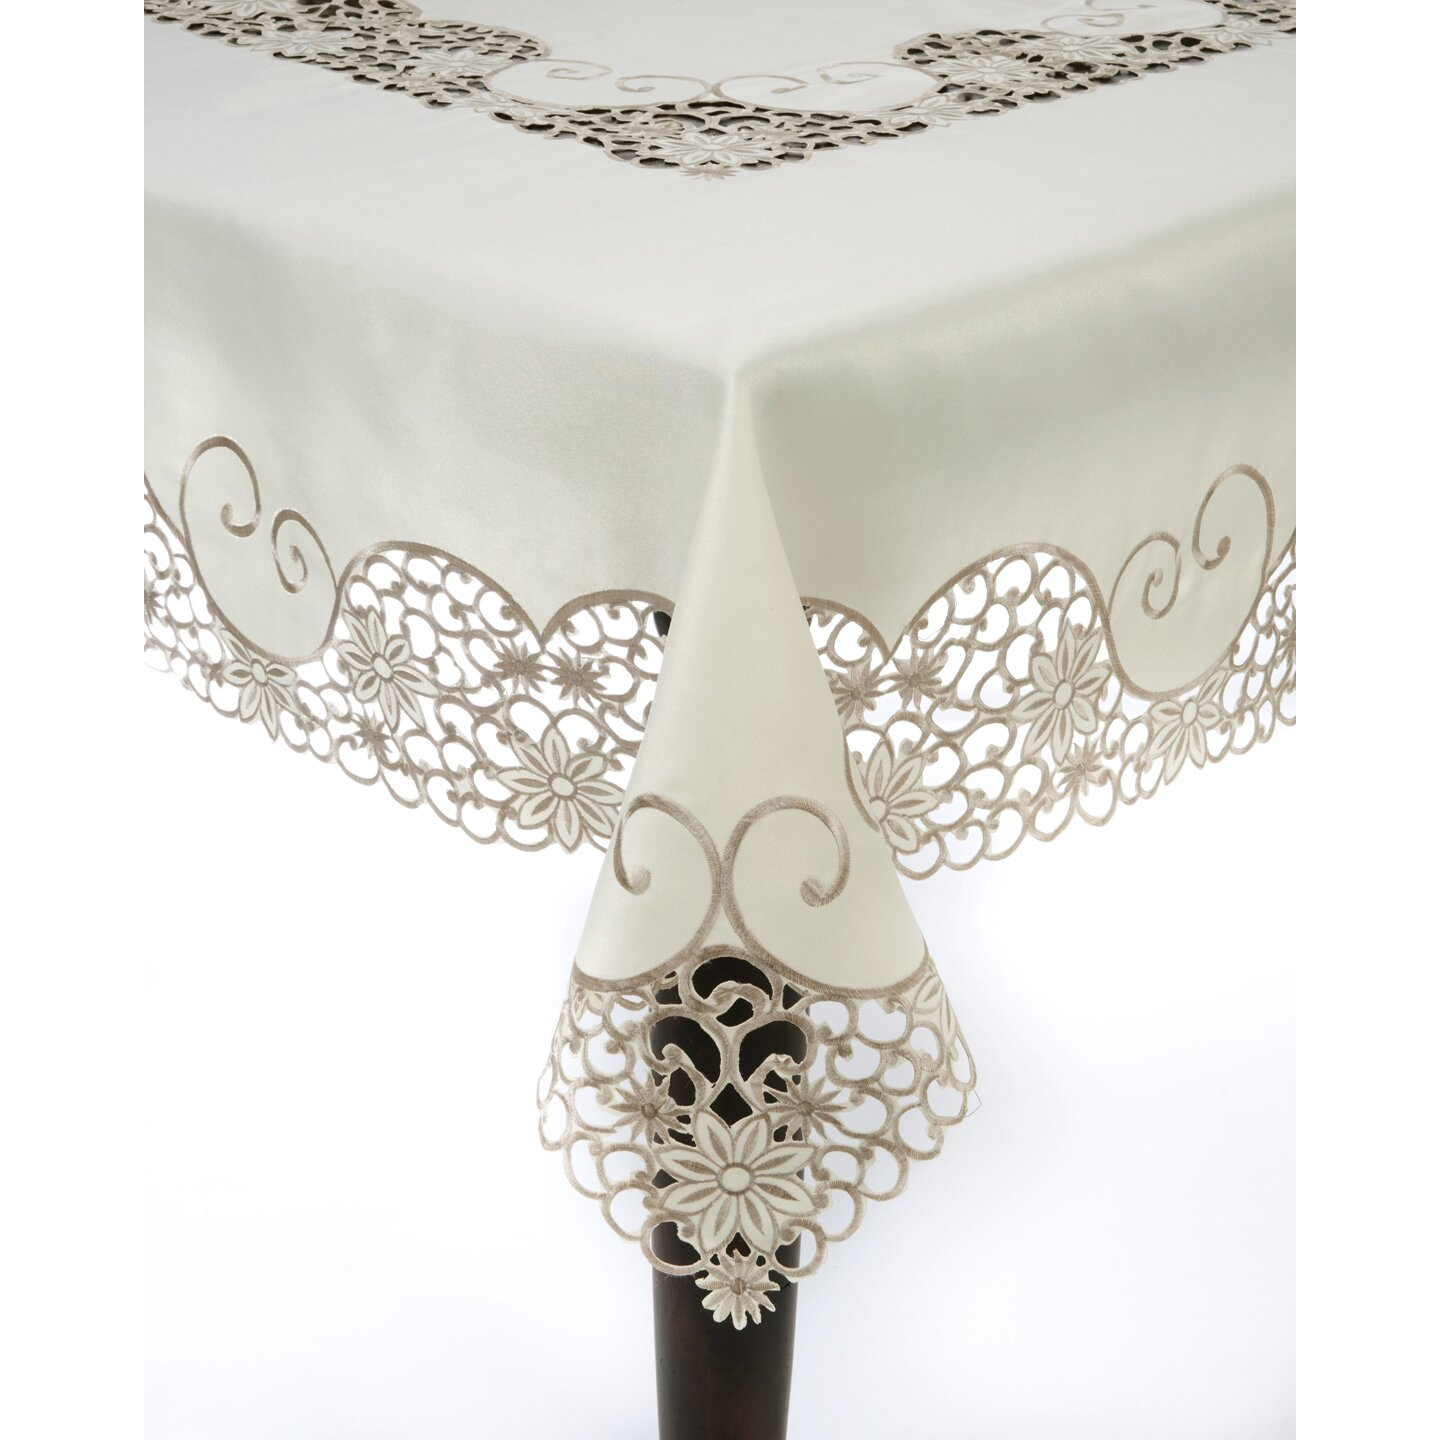 Saro embroidery and cutwork tablecloth reviews for Glass cut work designs